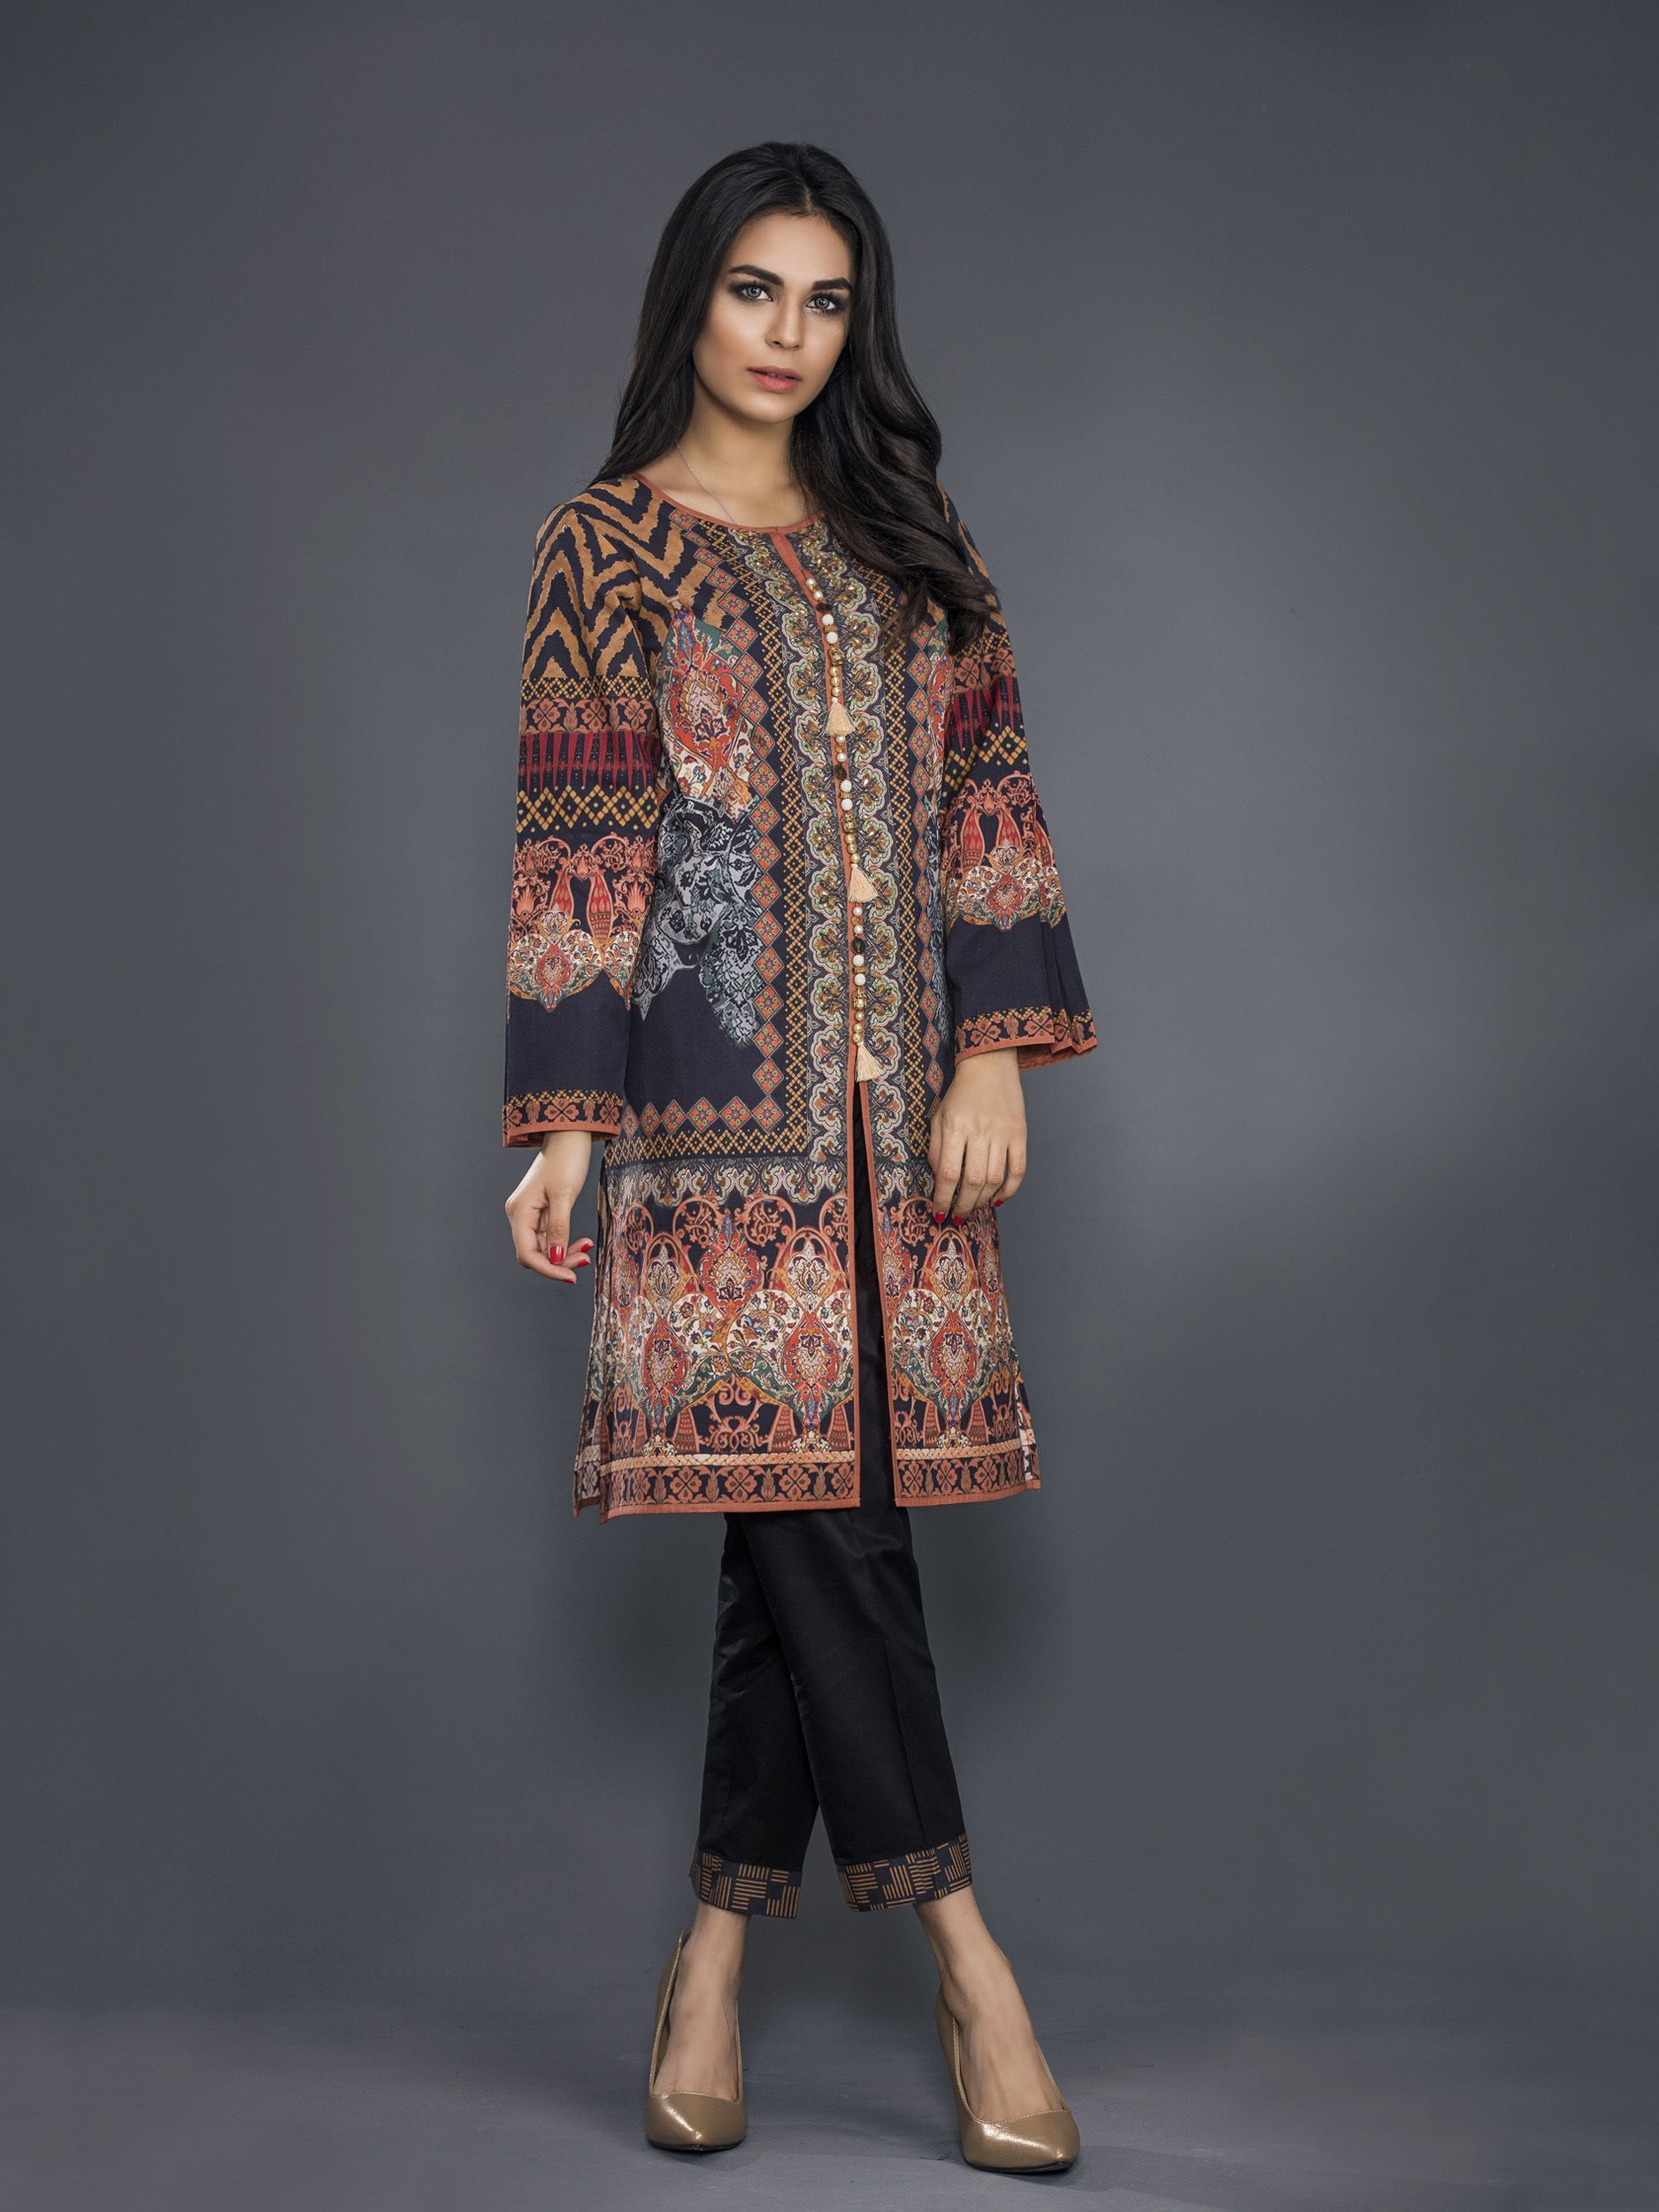 Limelight-pret-collection-2020-7